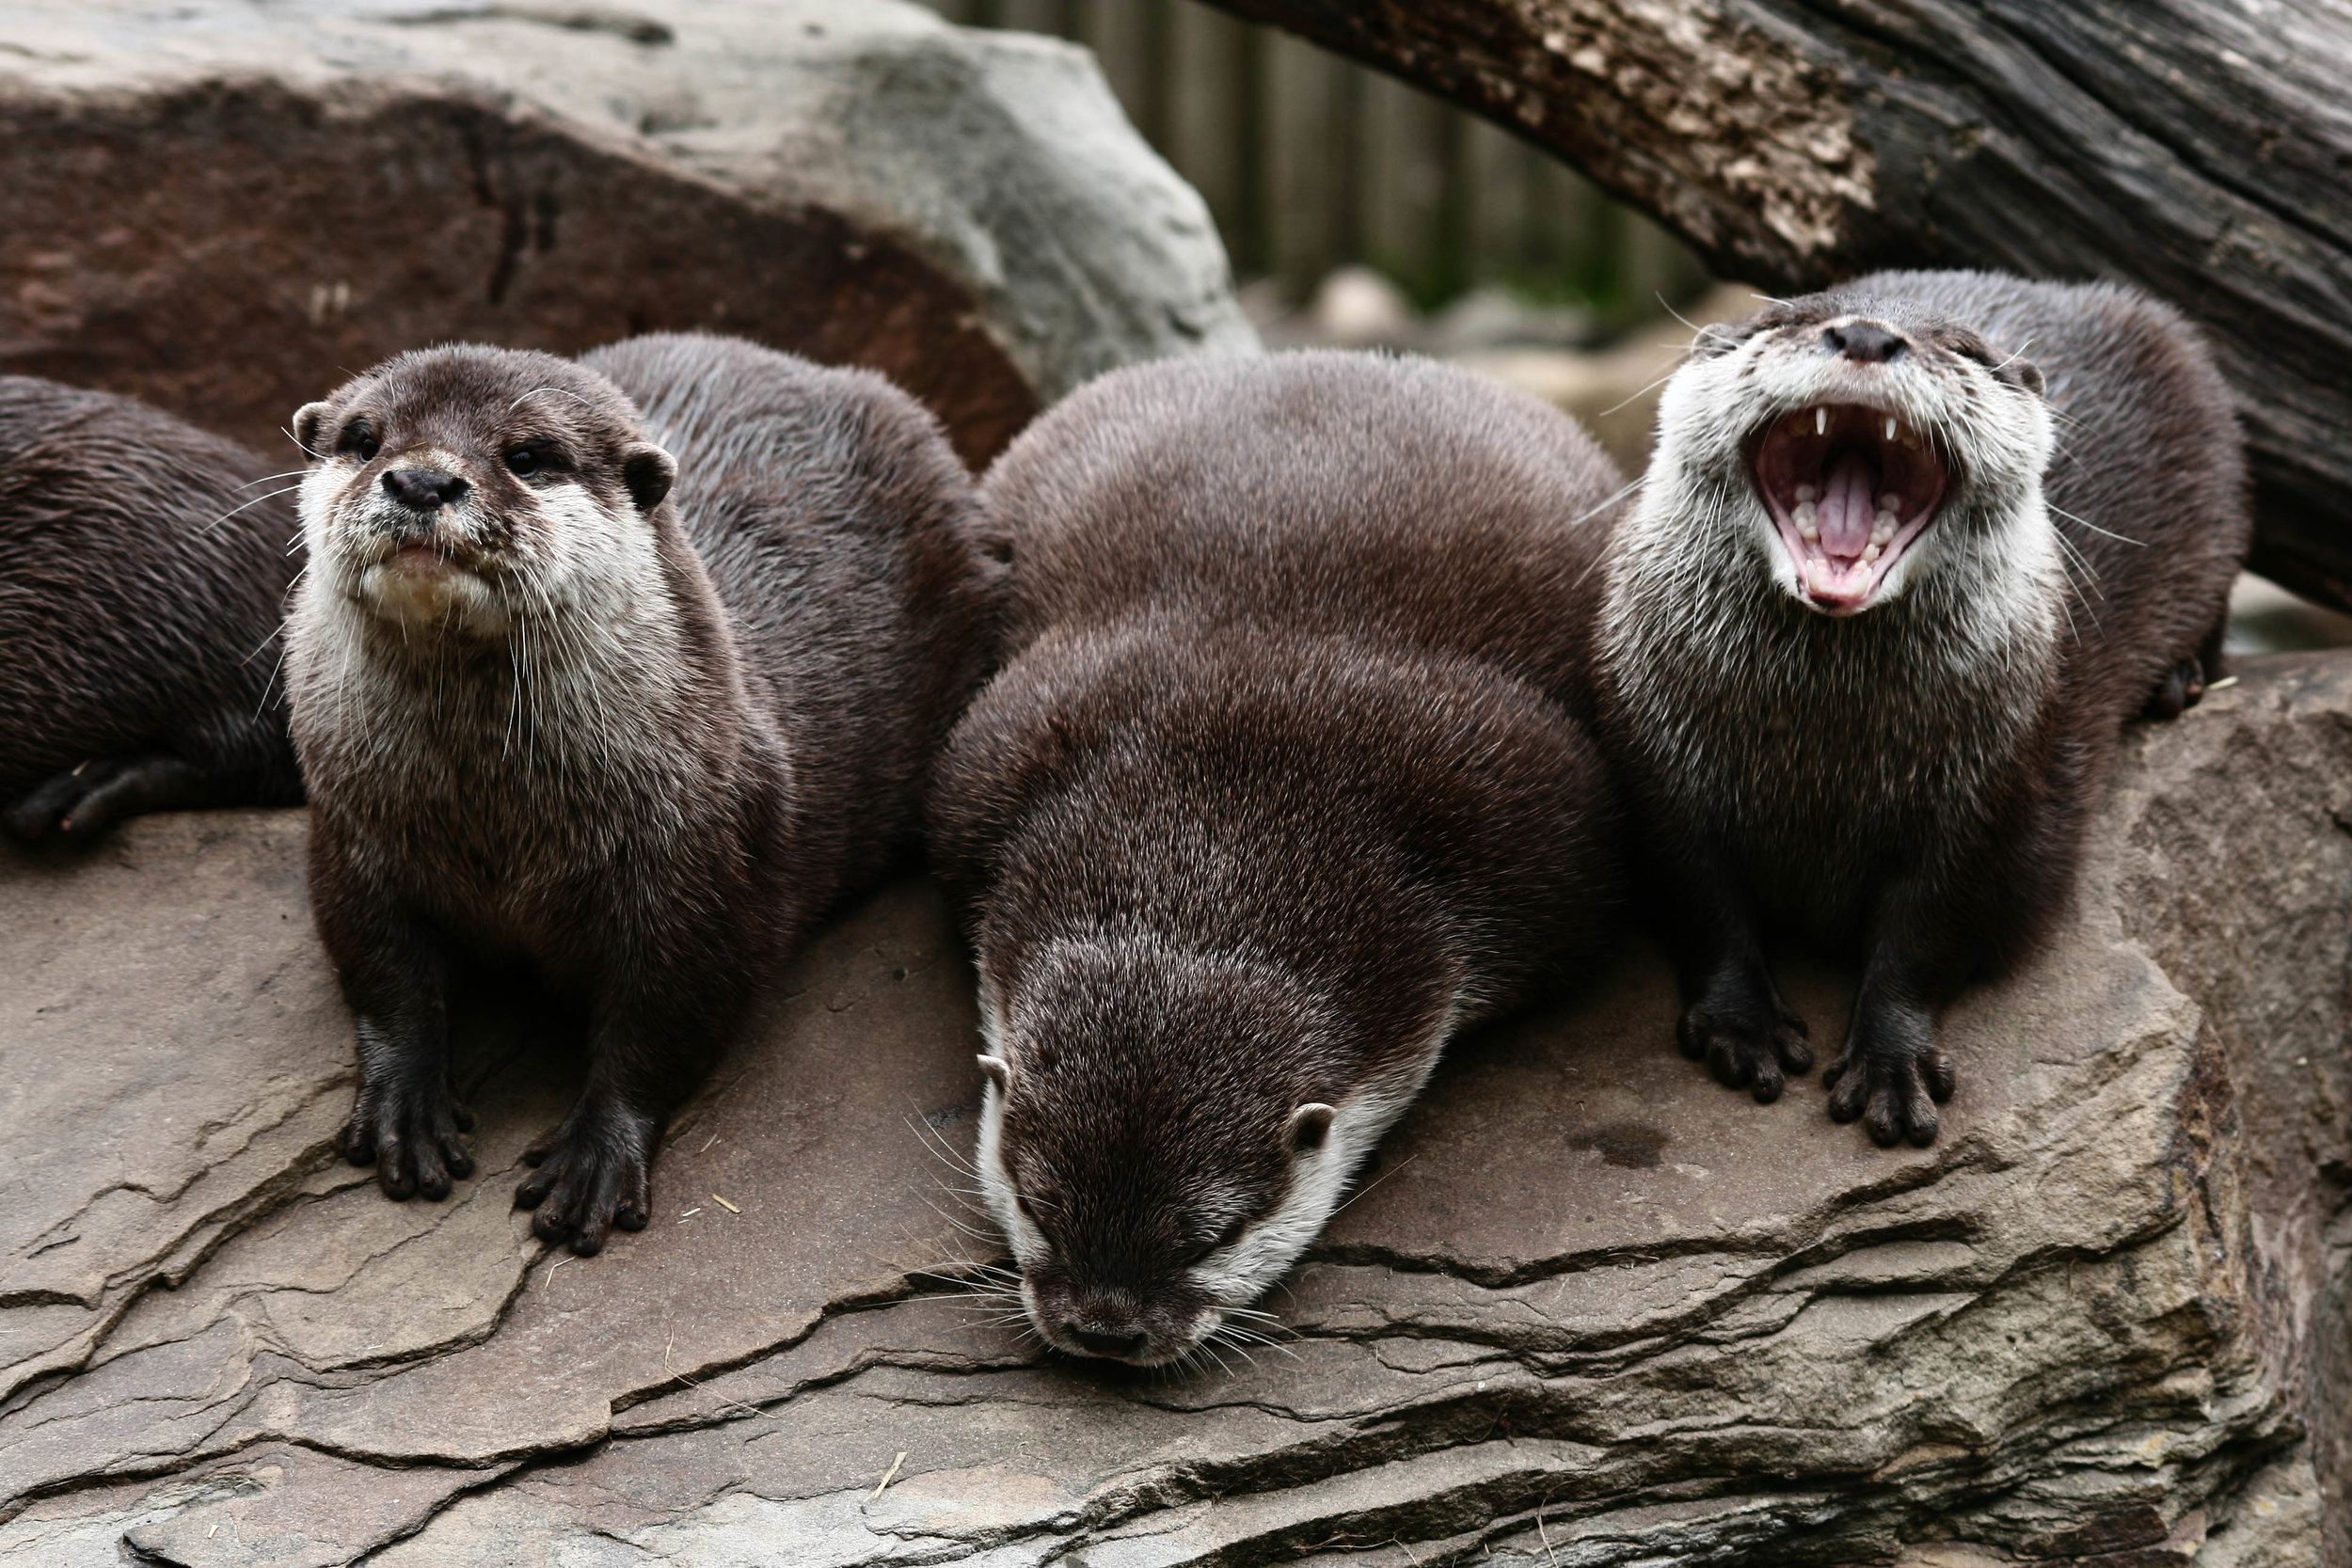 Otter Is the Only One Laughing at His Joke